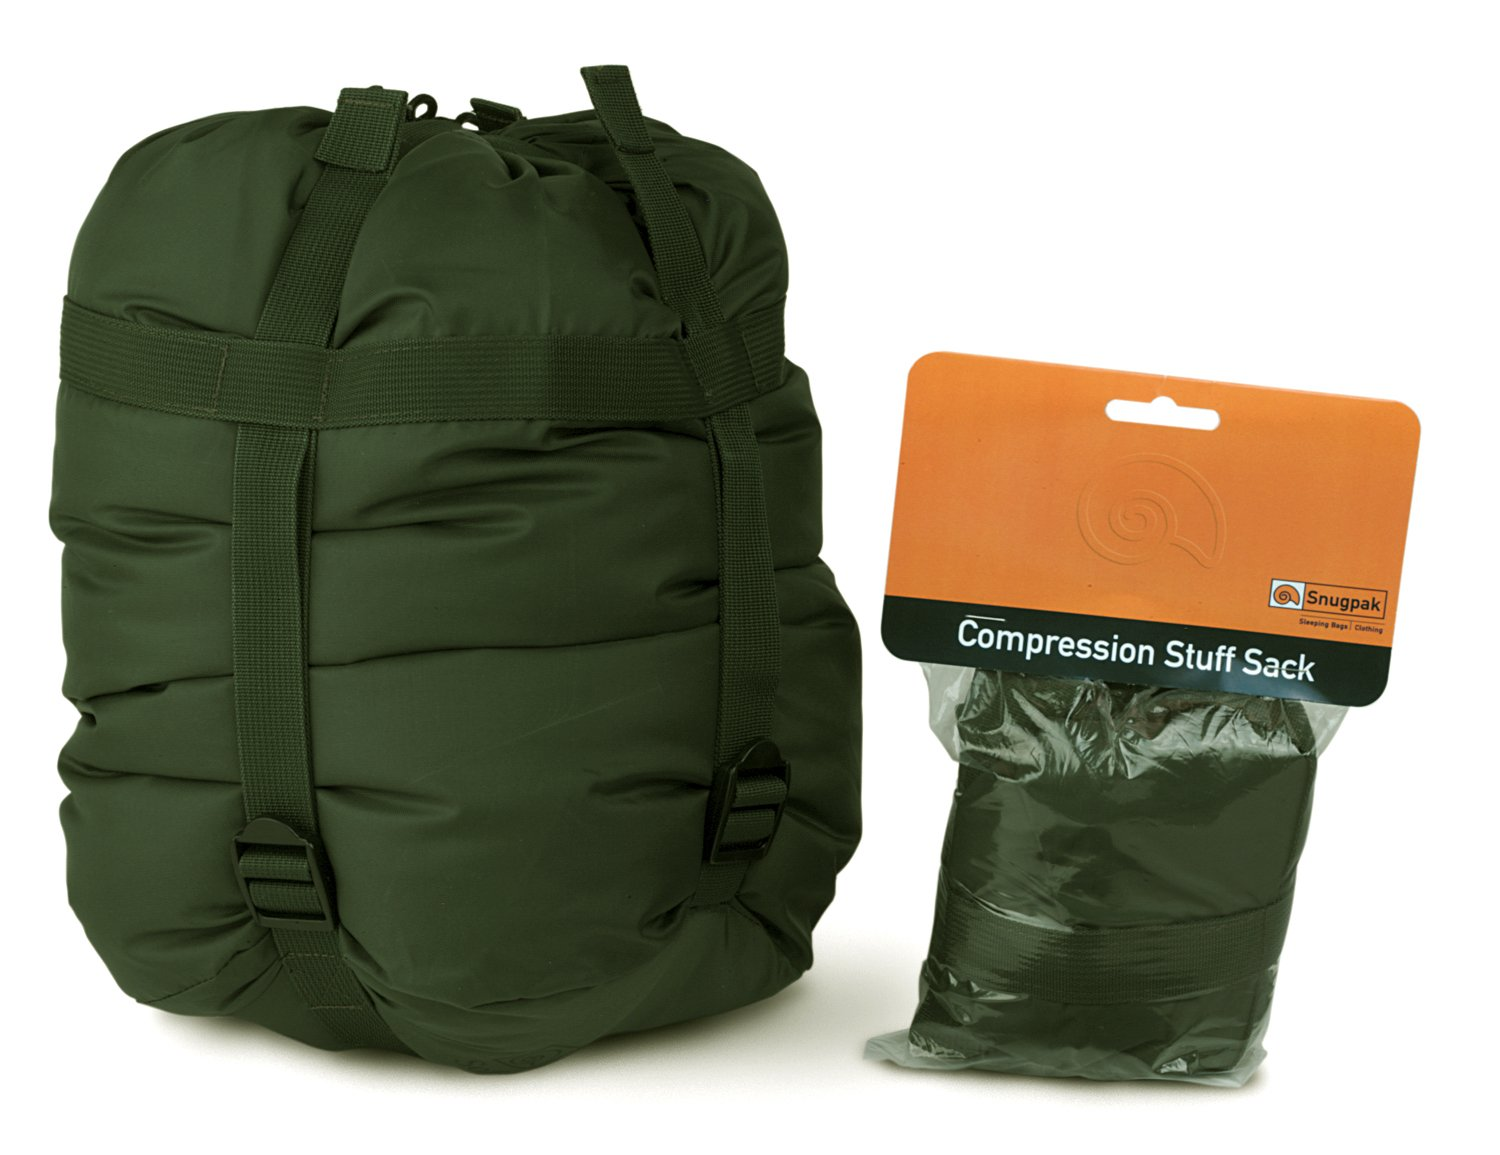 Amazon.com : Snugpak Compression Stuff Sacks : Sports & Outdoors